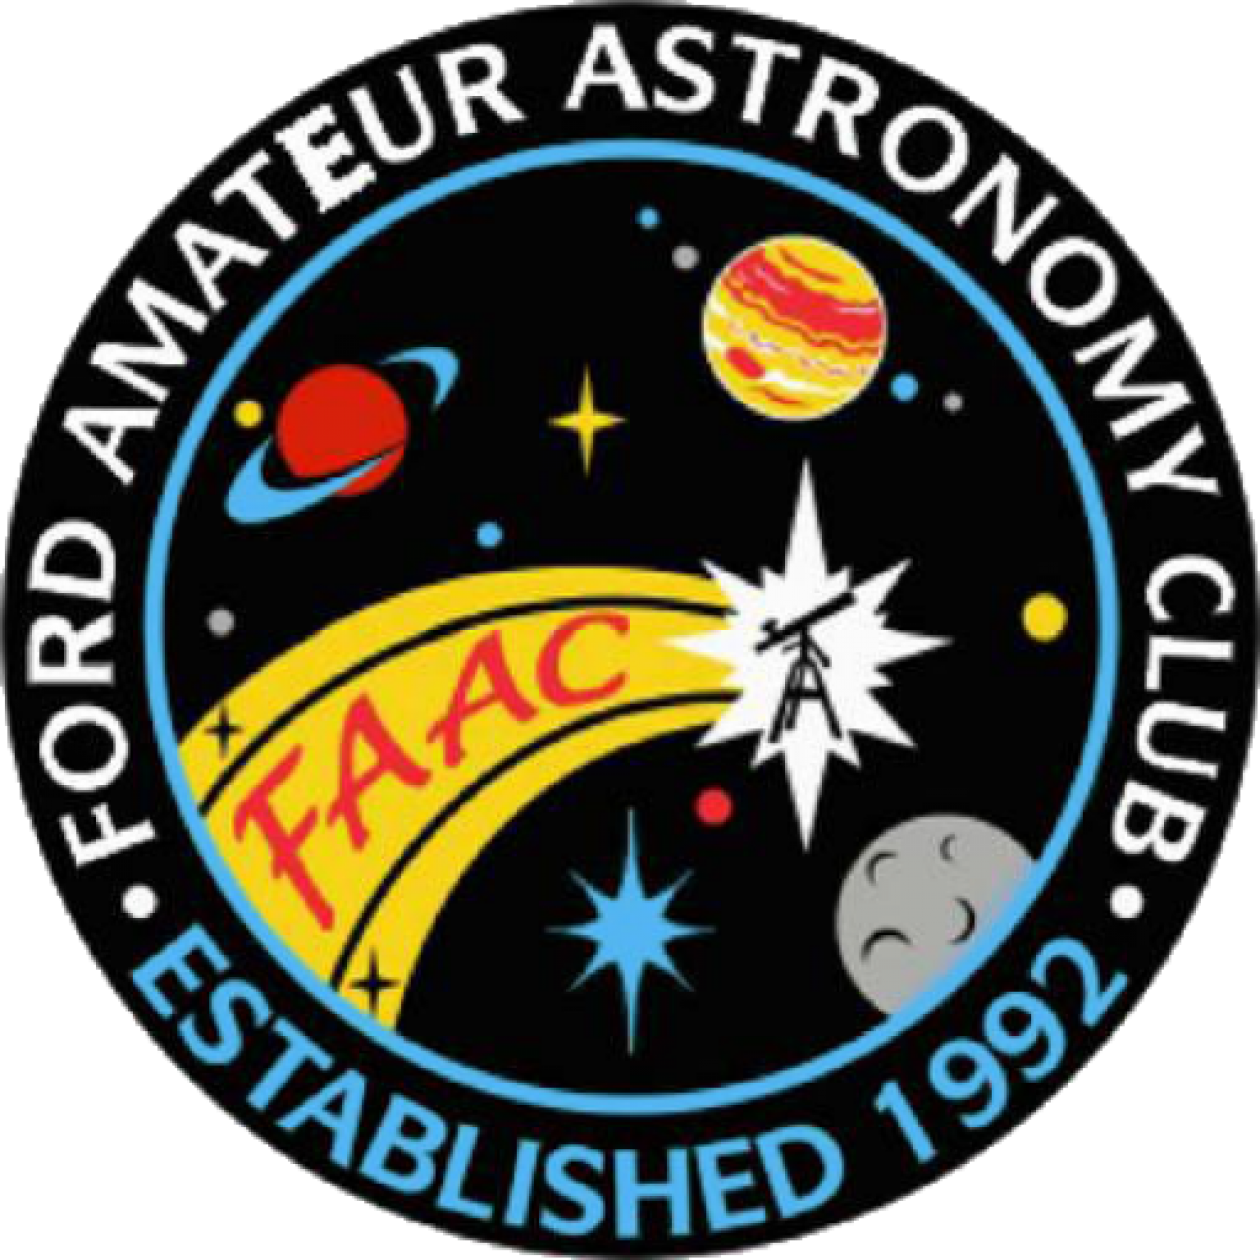 Think, Amateur astronomers club